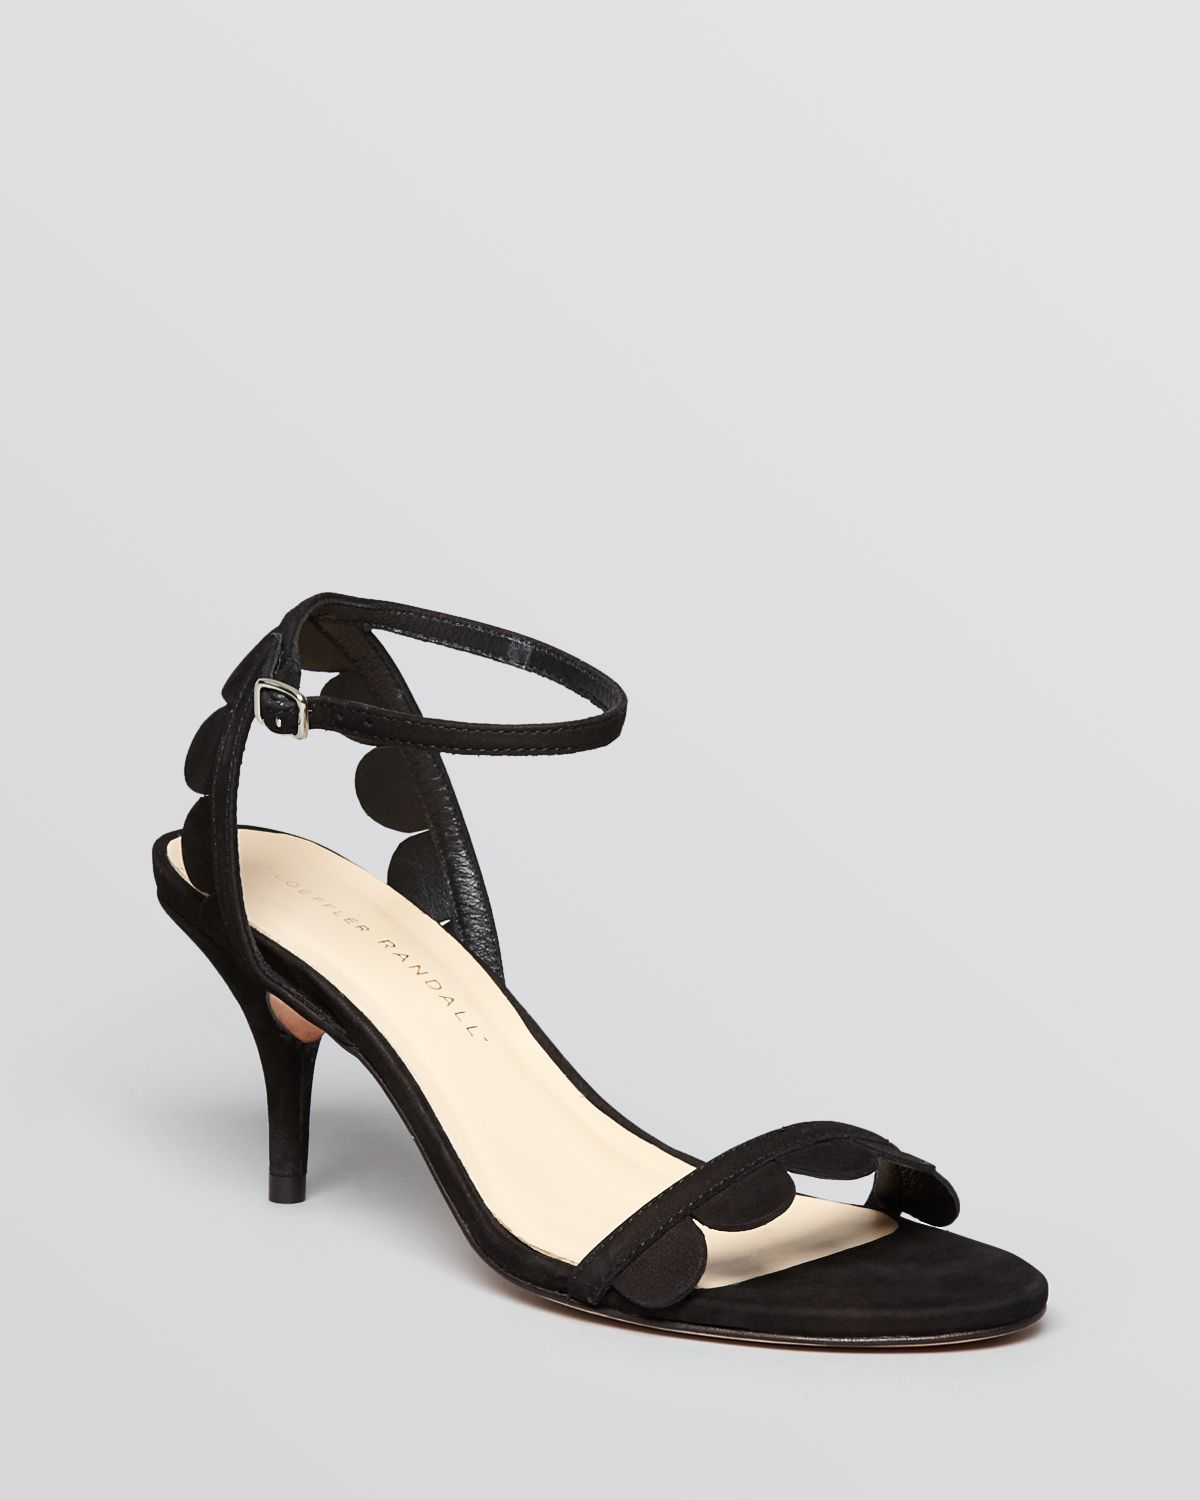 42a1cf3aff0 Lyst - Loeffler Randall Ankle Strap Sandals Lillit Scallop Mid Heel ...